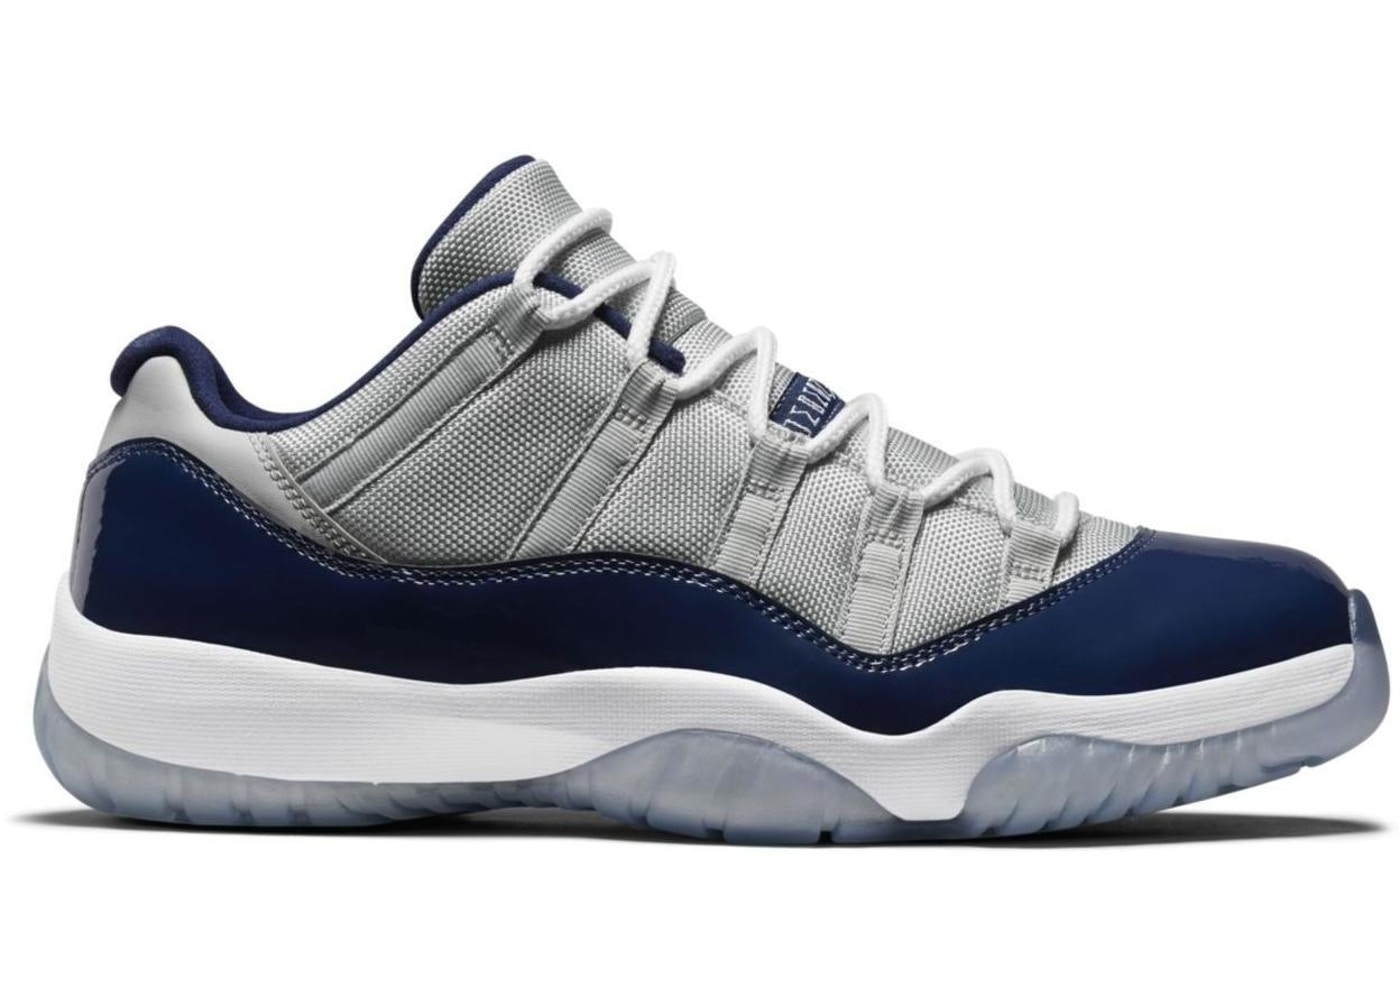 a0ac581961d Jordan 11 Retro Low Georgetown - 528895-007